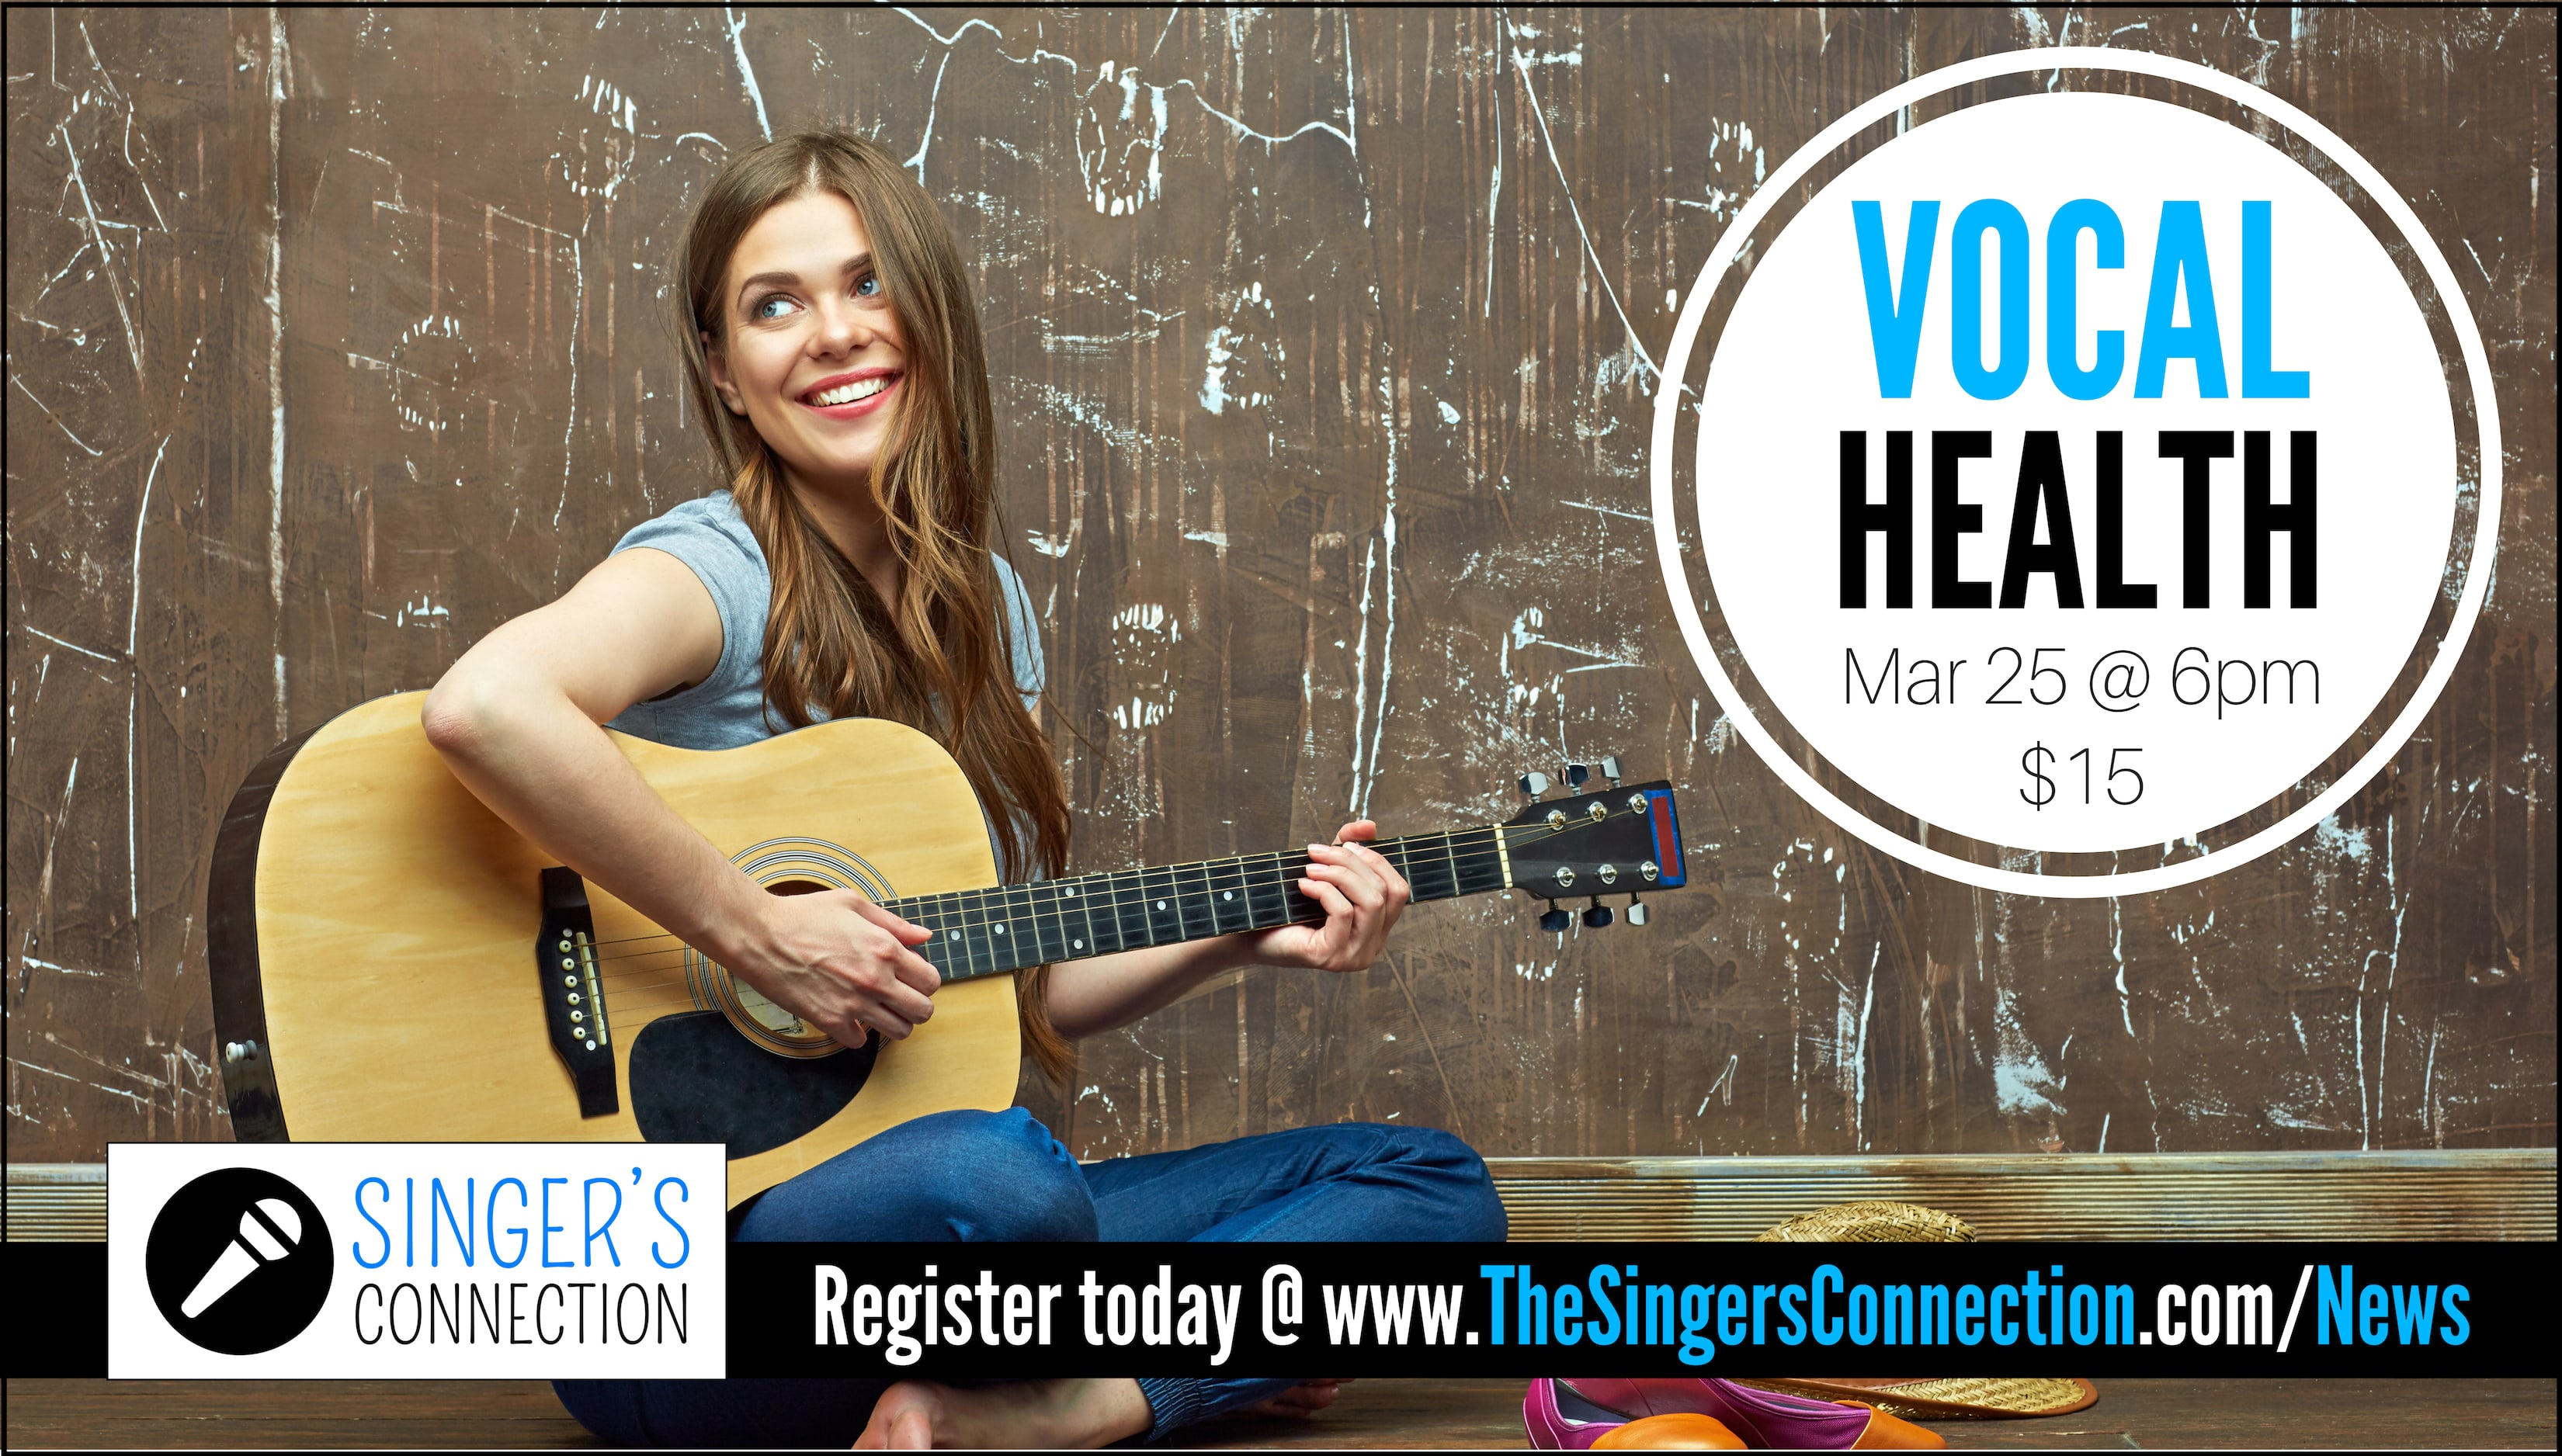 Vocal Health!  Join us for this AMAZING class as we discuss the physical, emotional, and nutritional aspects of taking care of your voice!  One of many singing workshops offered! Register today!